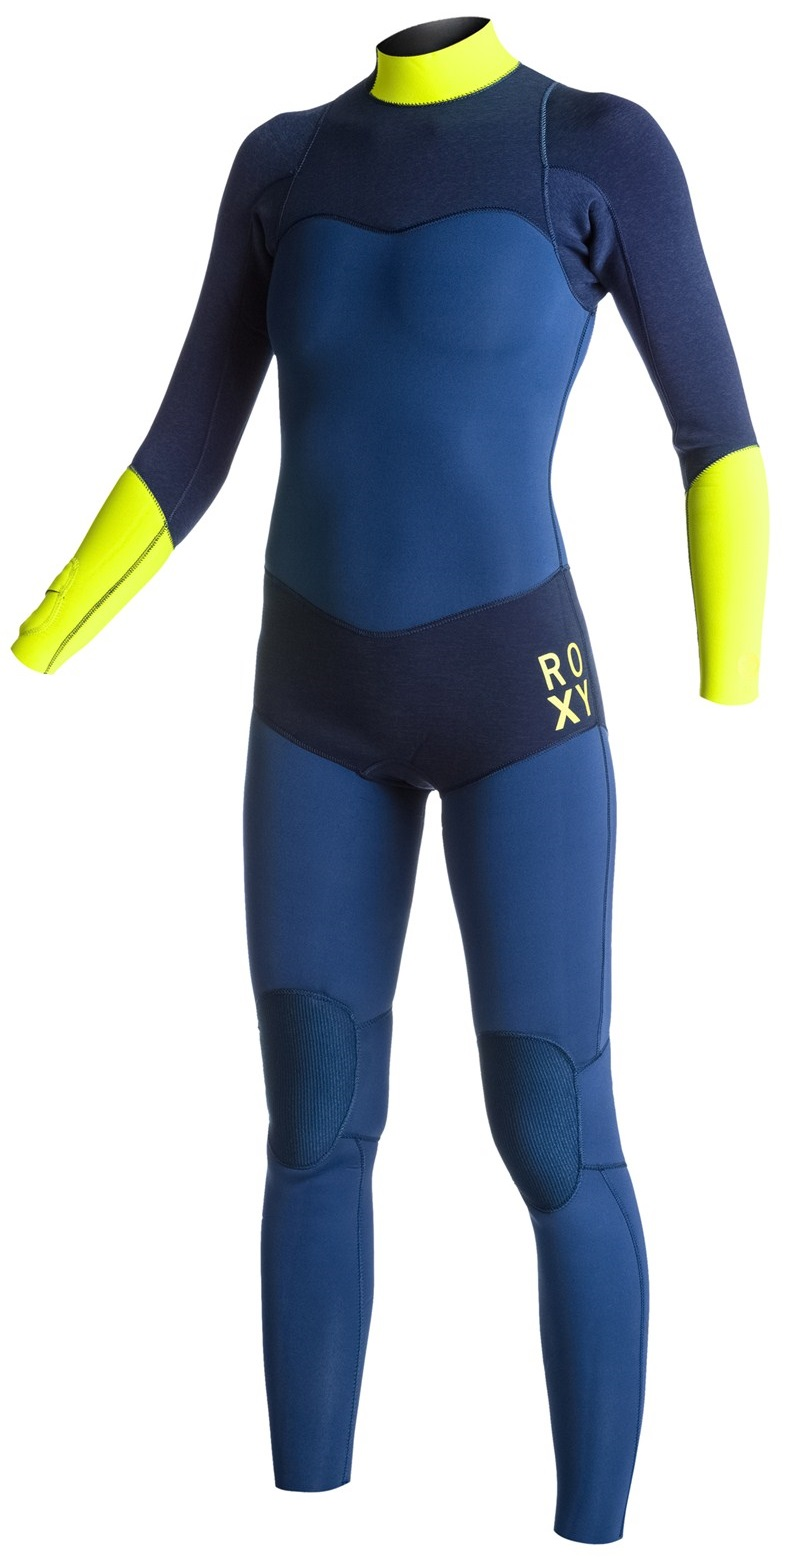 Roxy XY Women's 3/2mm Wetsuit Back Zip Fullsuit GBS Sealed Seams LIMITED EDITION